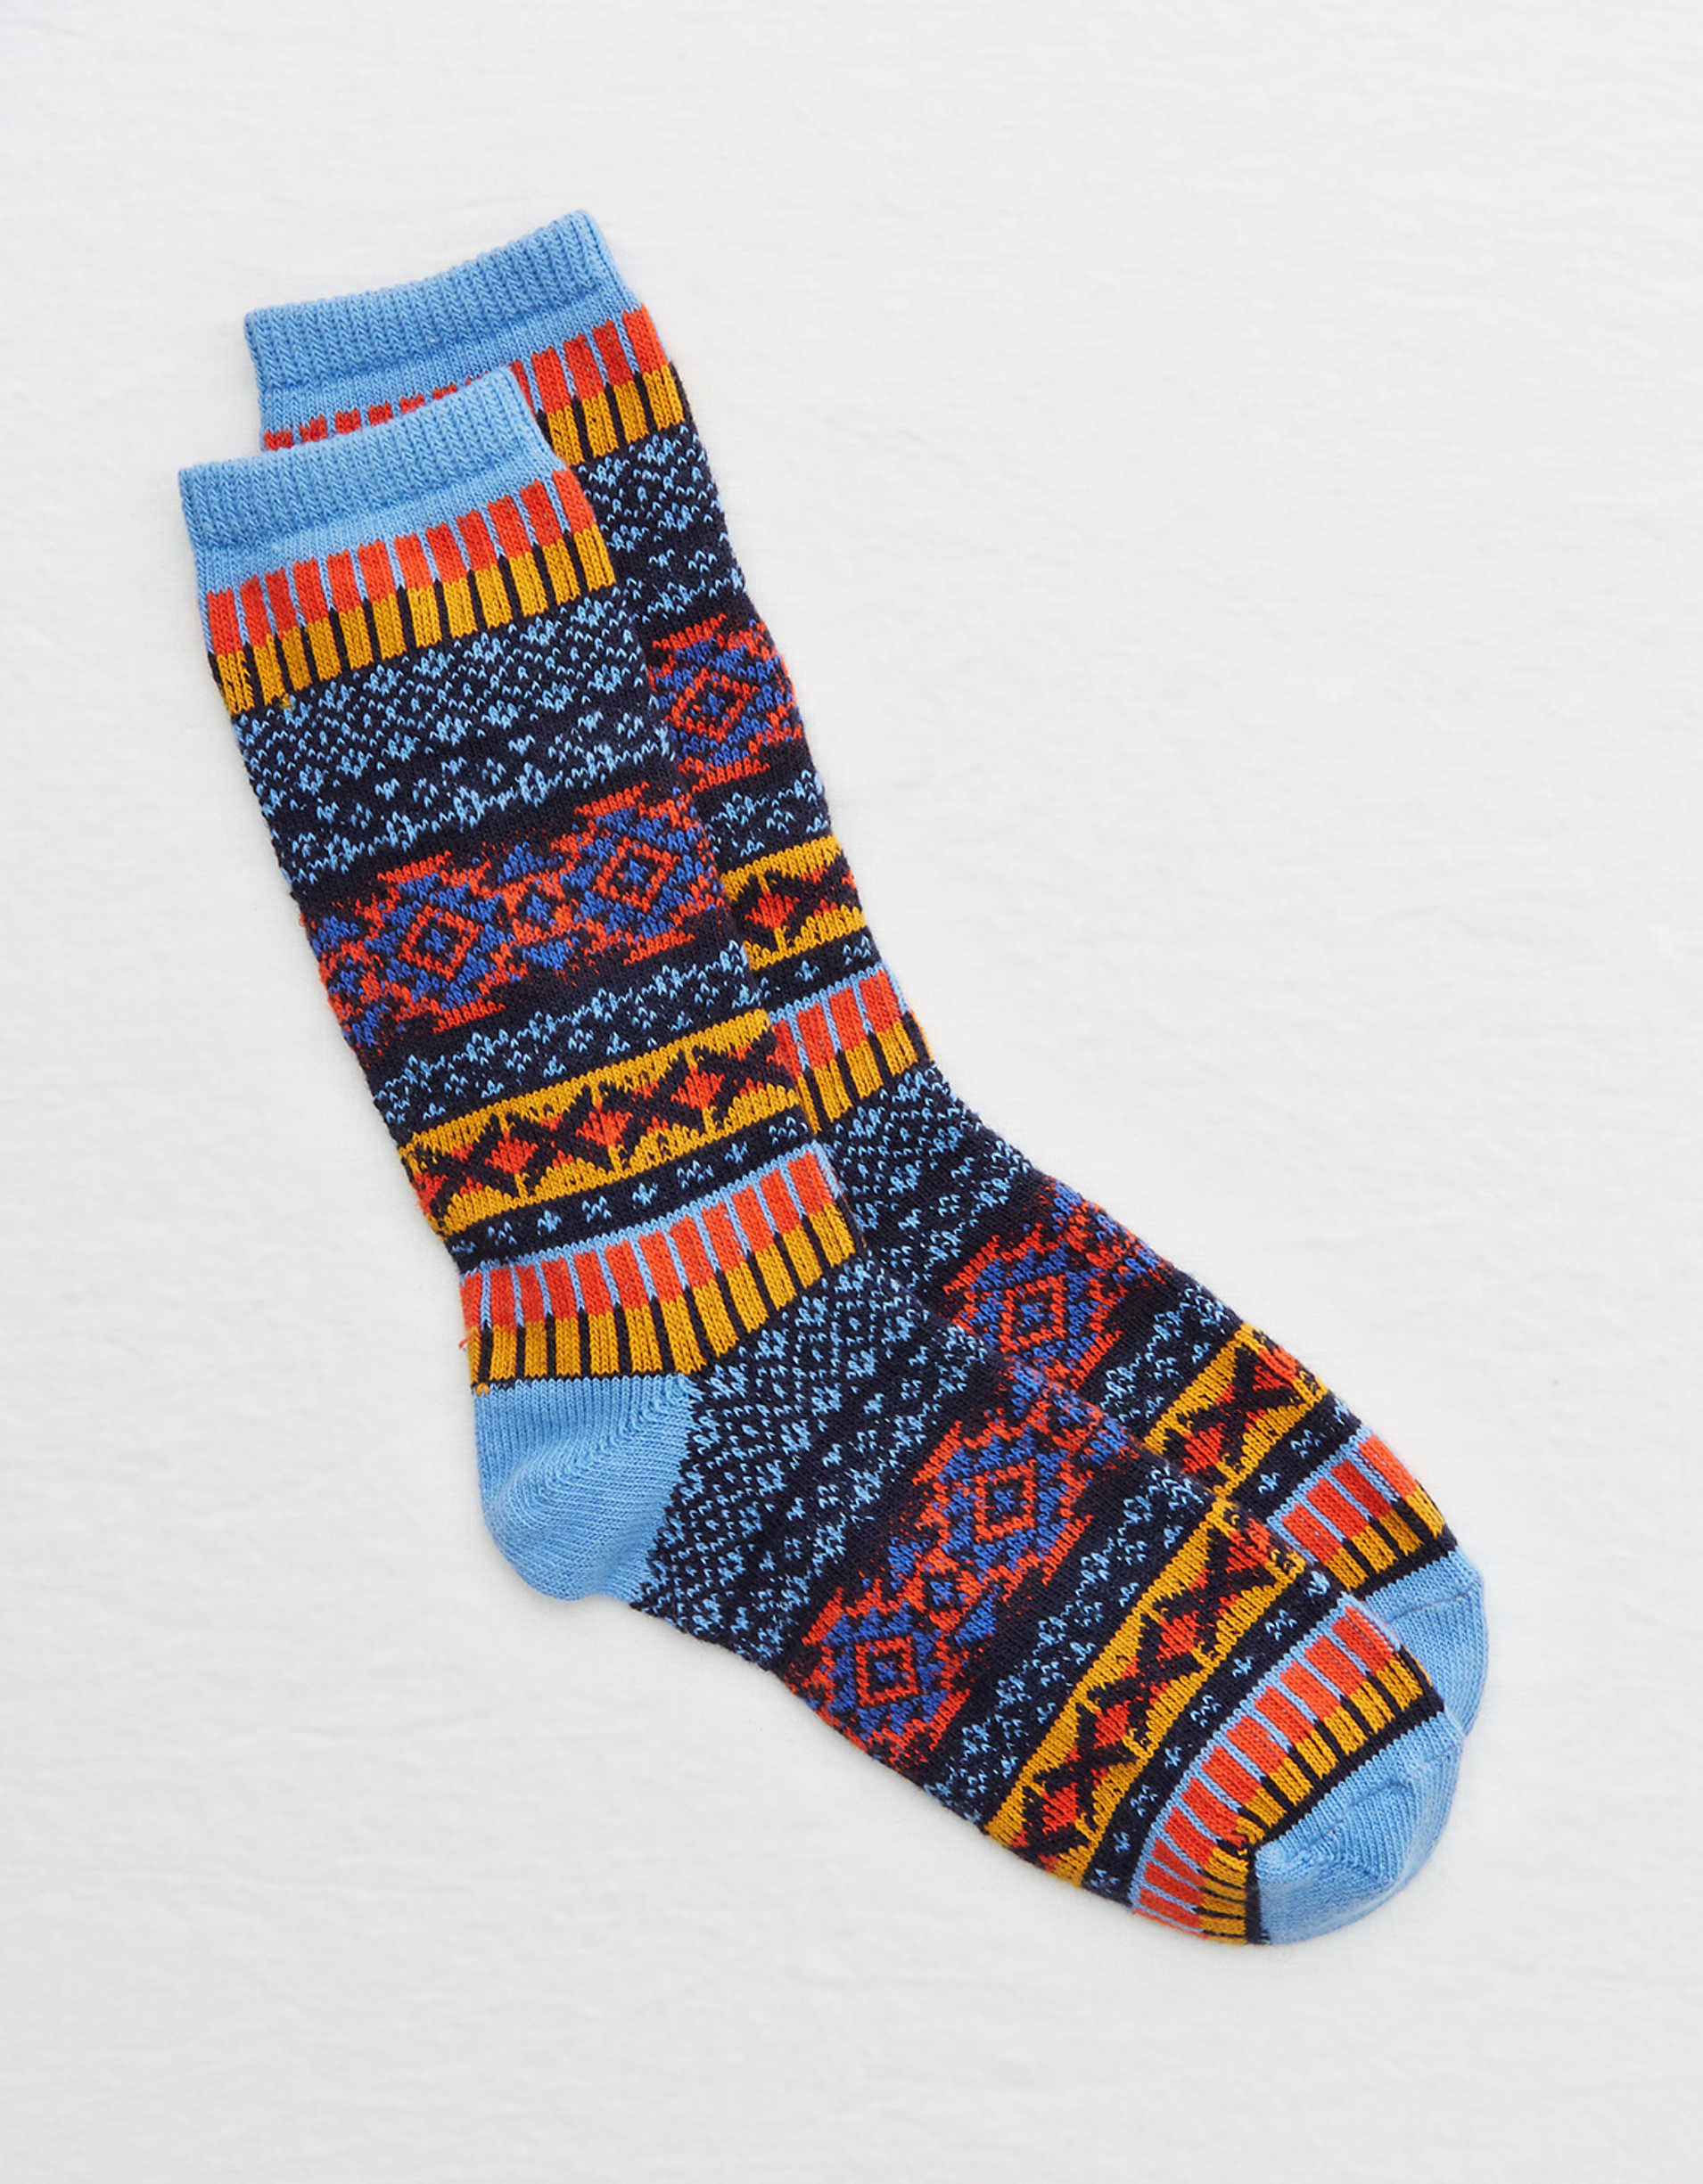 Aerie Fairisle Crew Socks